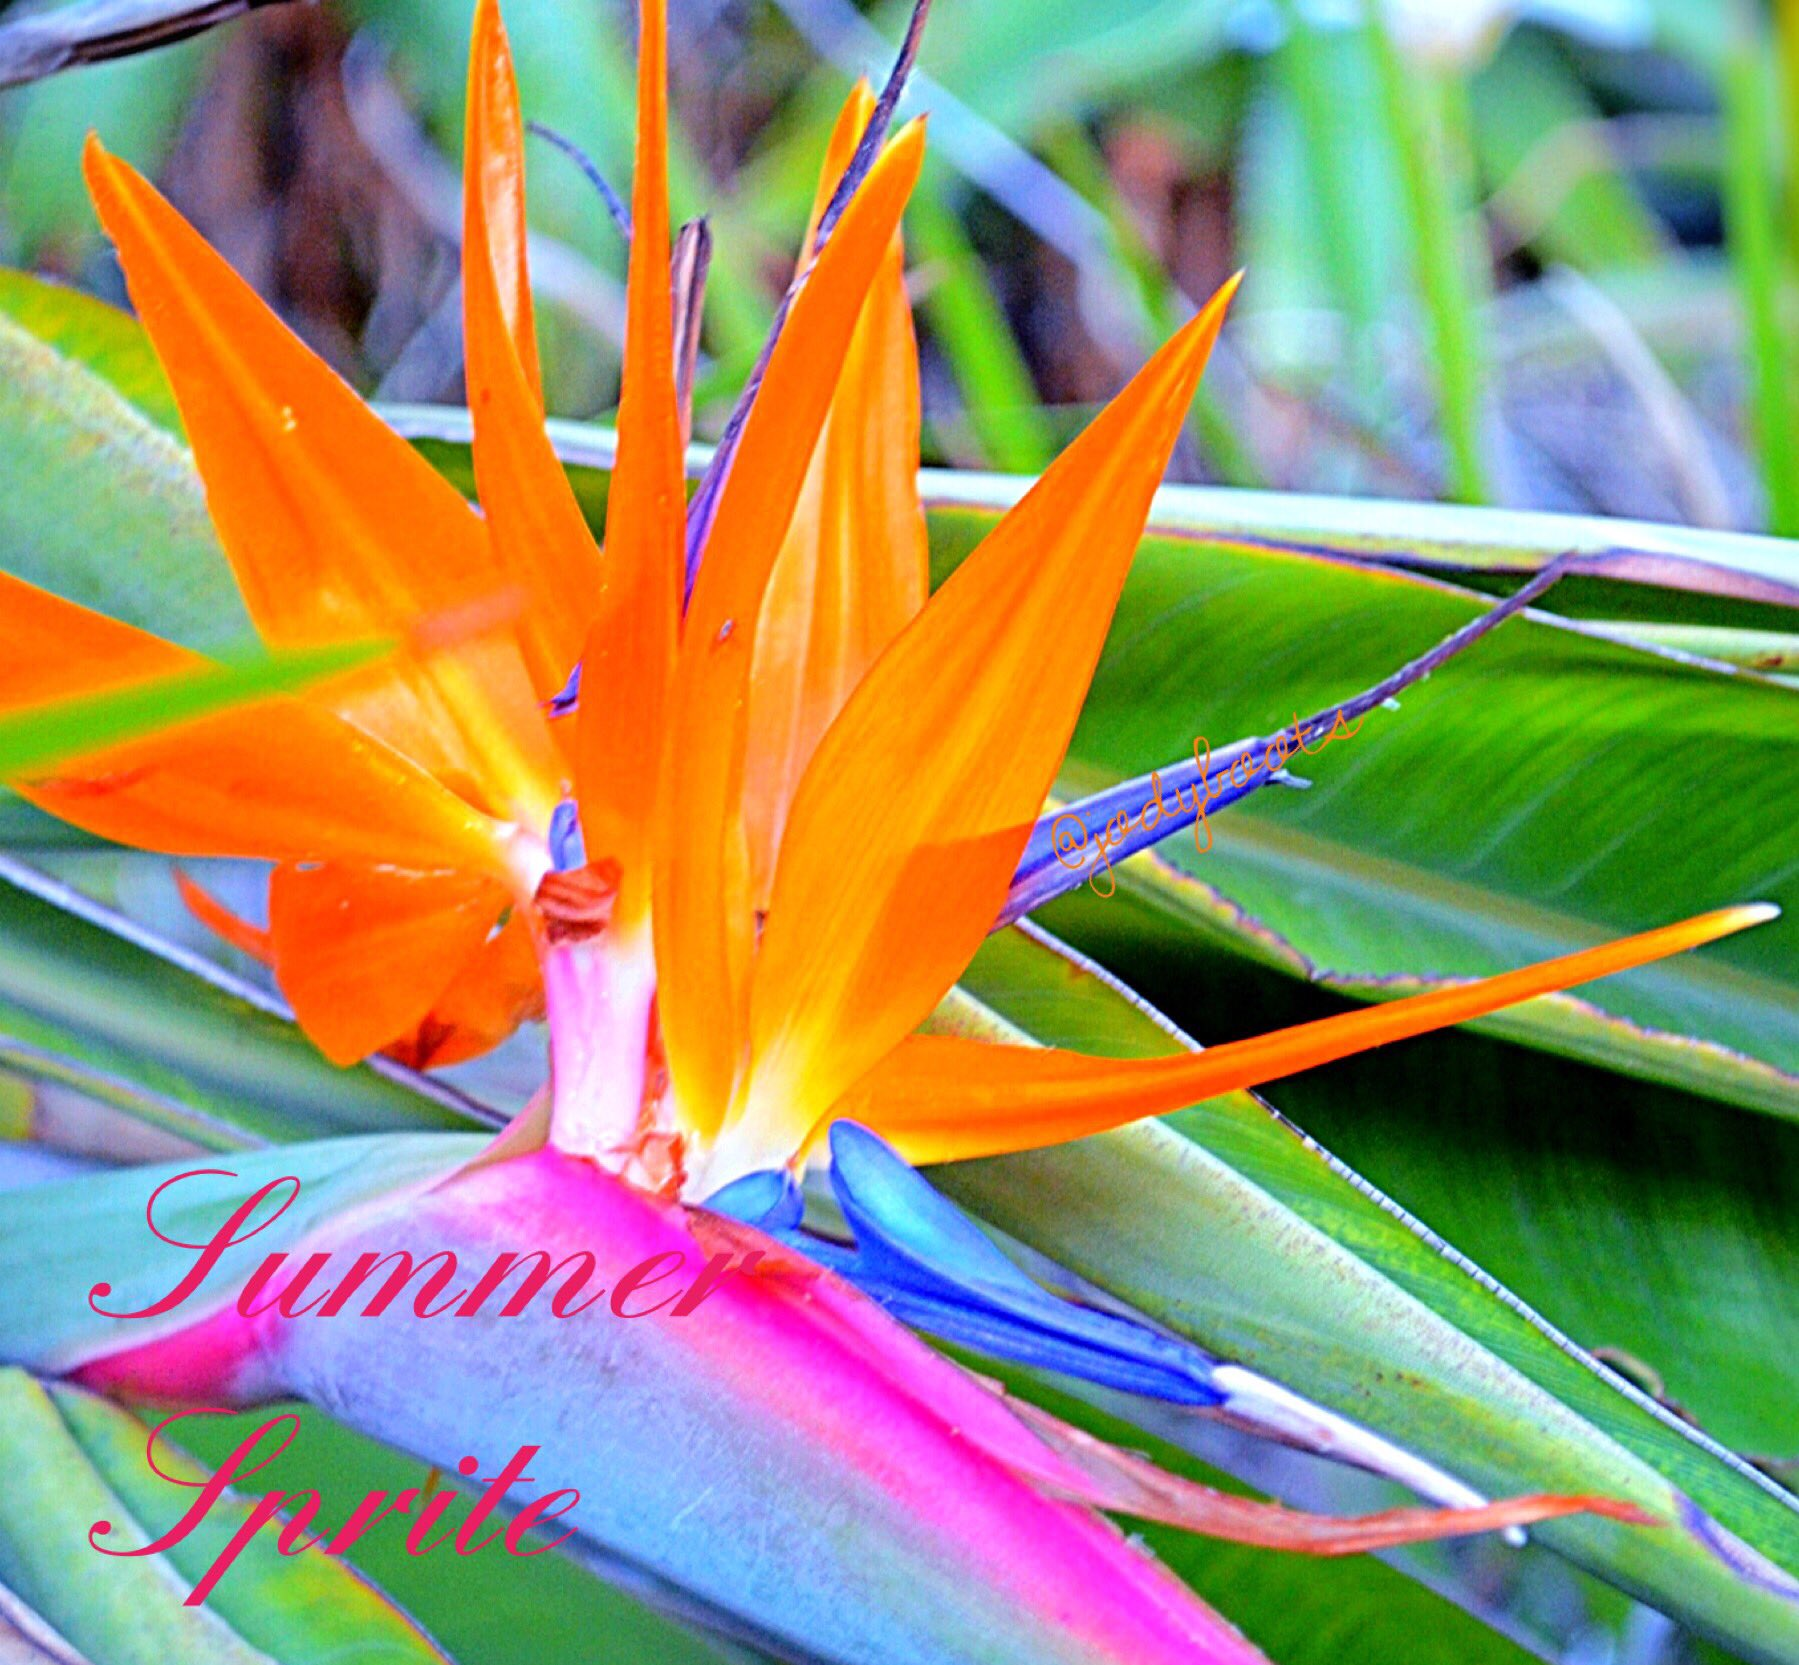 """""""But thy eternal summer shall not fade, Nor lose possession of that fair thou ow'st; Nor shall death brag thou wander'st in his shade, When in eternal lines to time thou grow'st..""""#ShakespeareSunday #SummerVibes #ThinkBIGSundayWithMarsha #birdofparadise #SummerSprite #flowerpower https://t.co/2424rDJZGq"""